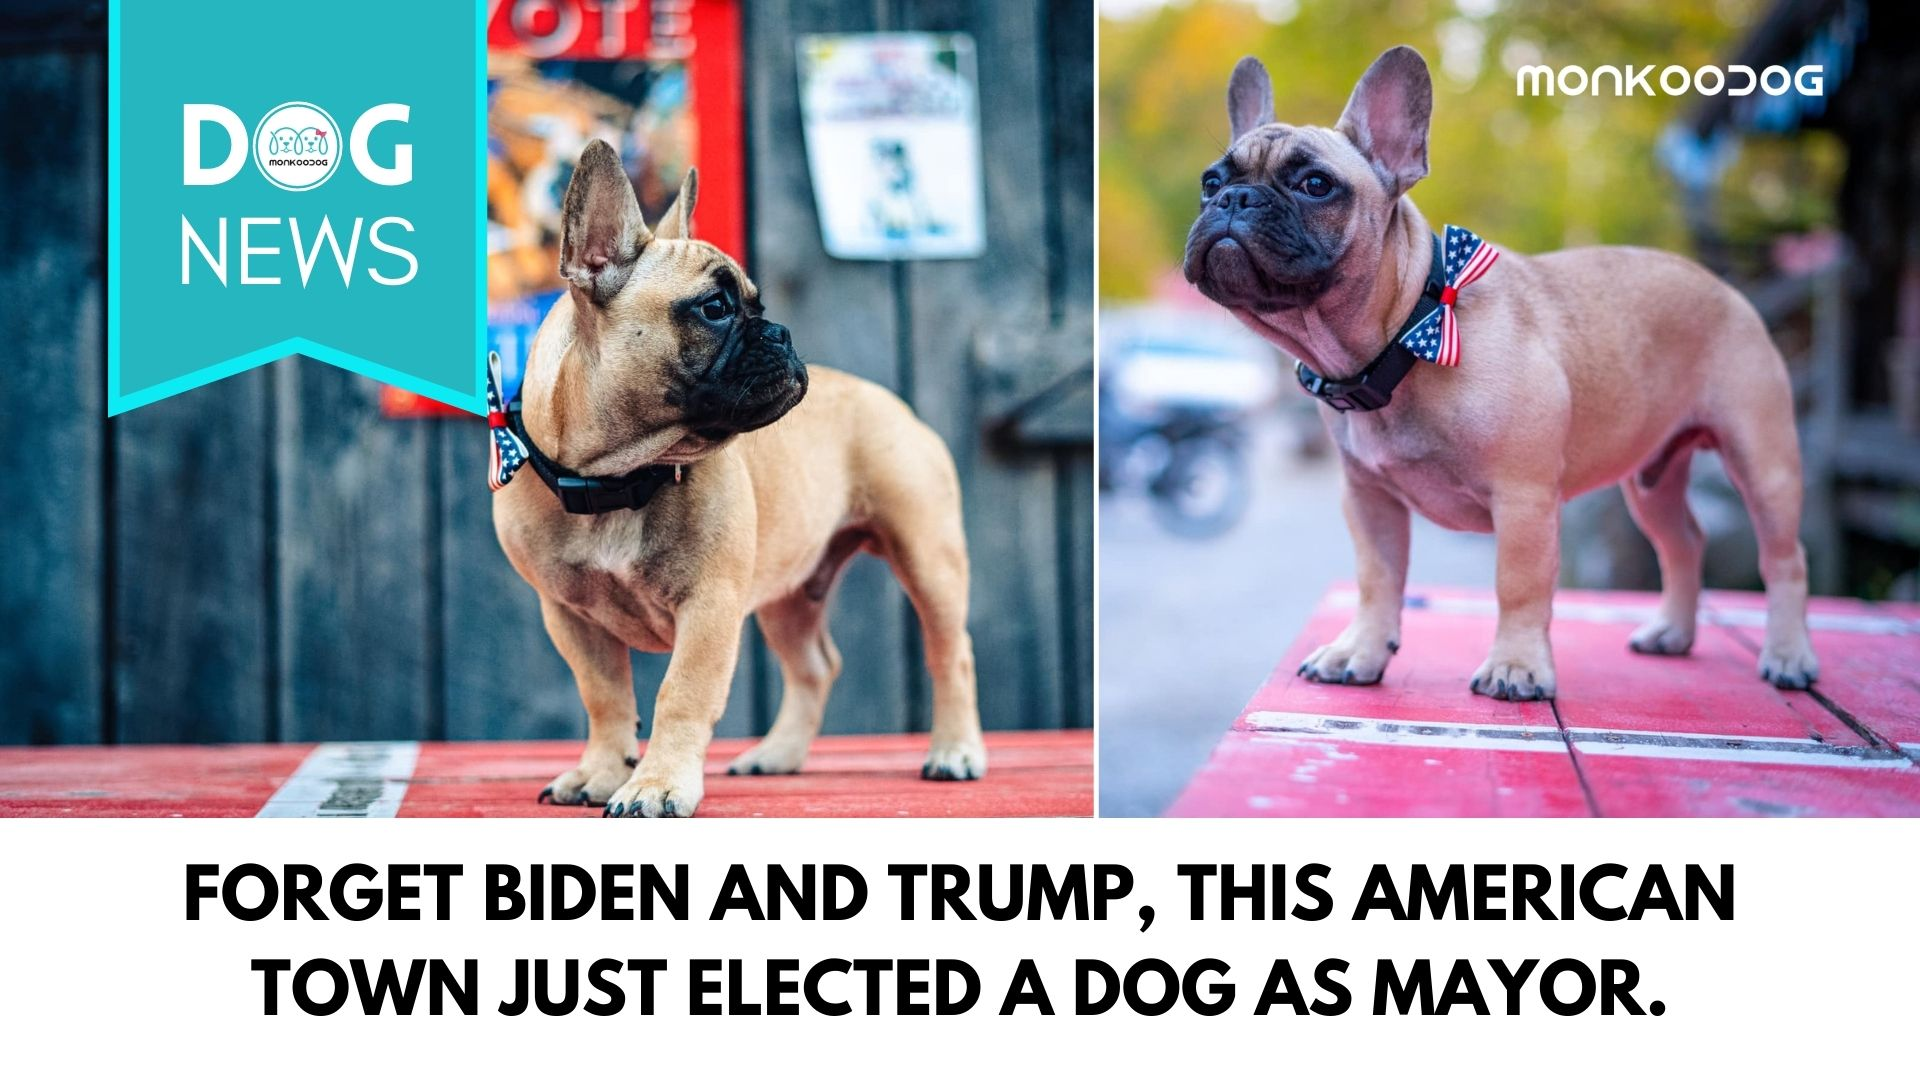 Amidst the Trump vs Biden US election scenario, Kentucky chooses a dog as their Mayor.